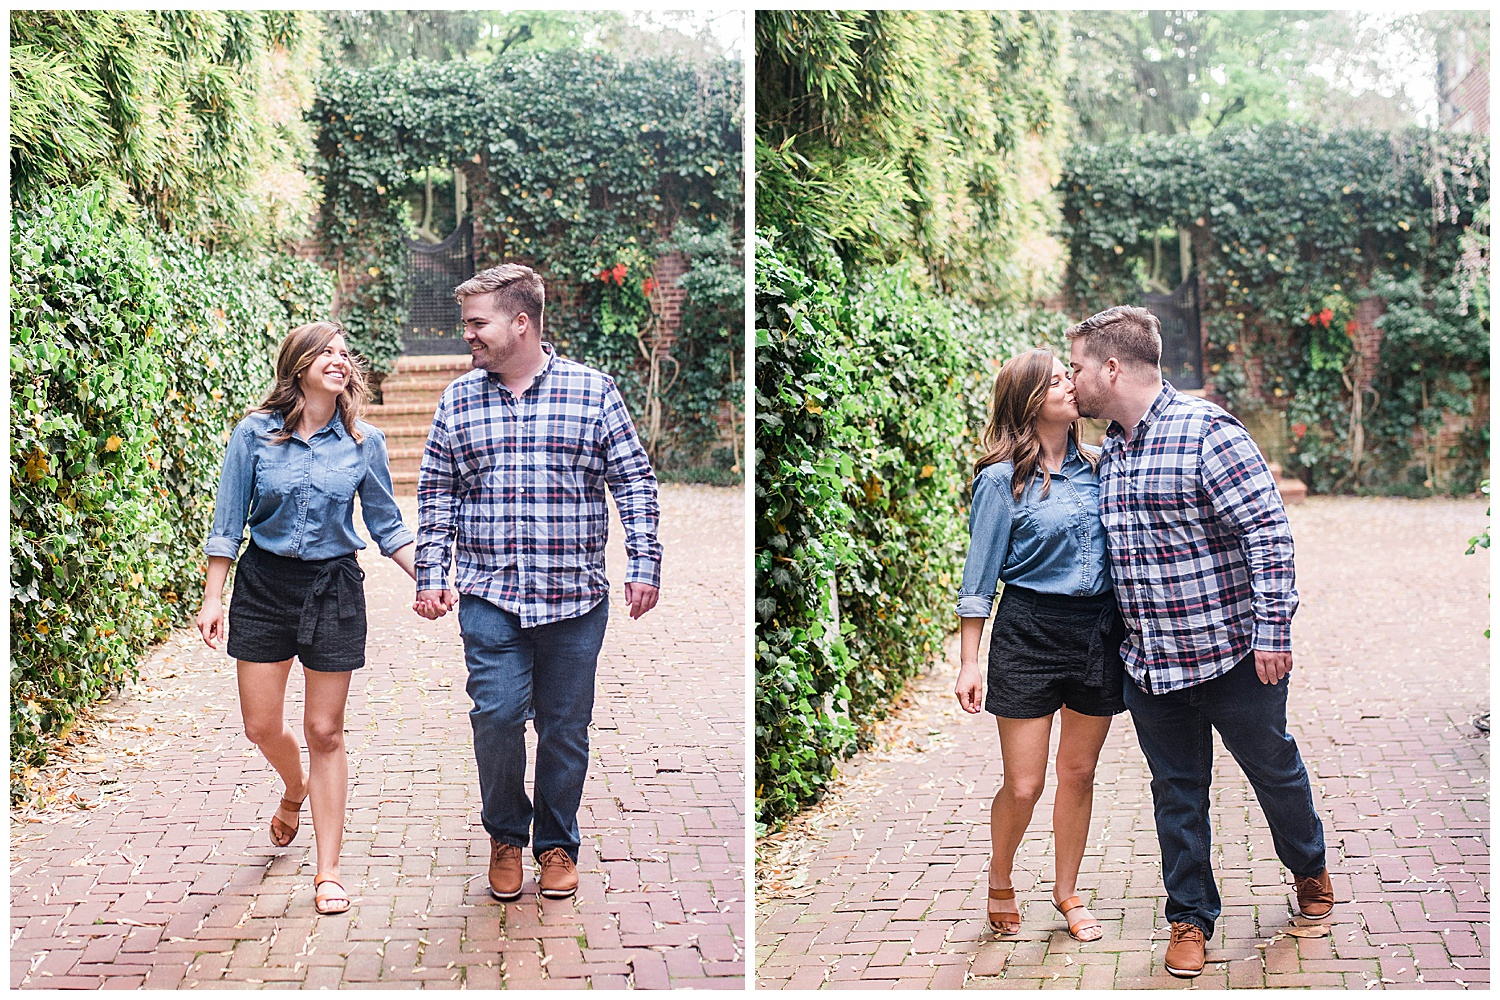 Michael and Mollie, Georgetown, Washington DC, Engagement Session, Aly Sprecher Creative